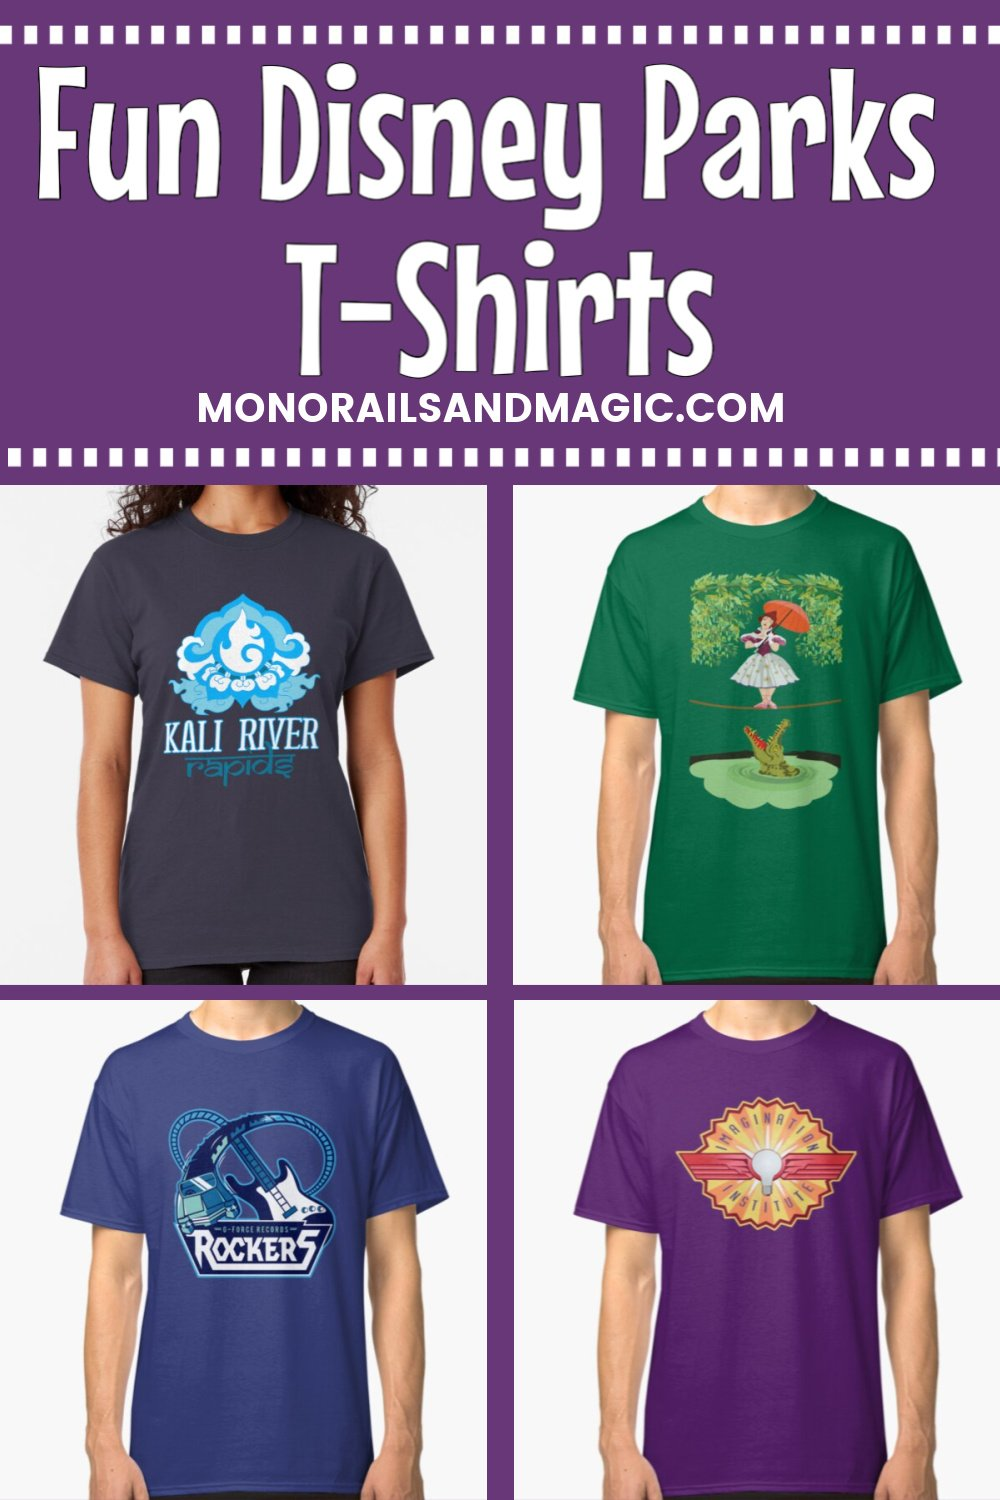 Disney Parks themed t-shirts from Redbubble